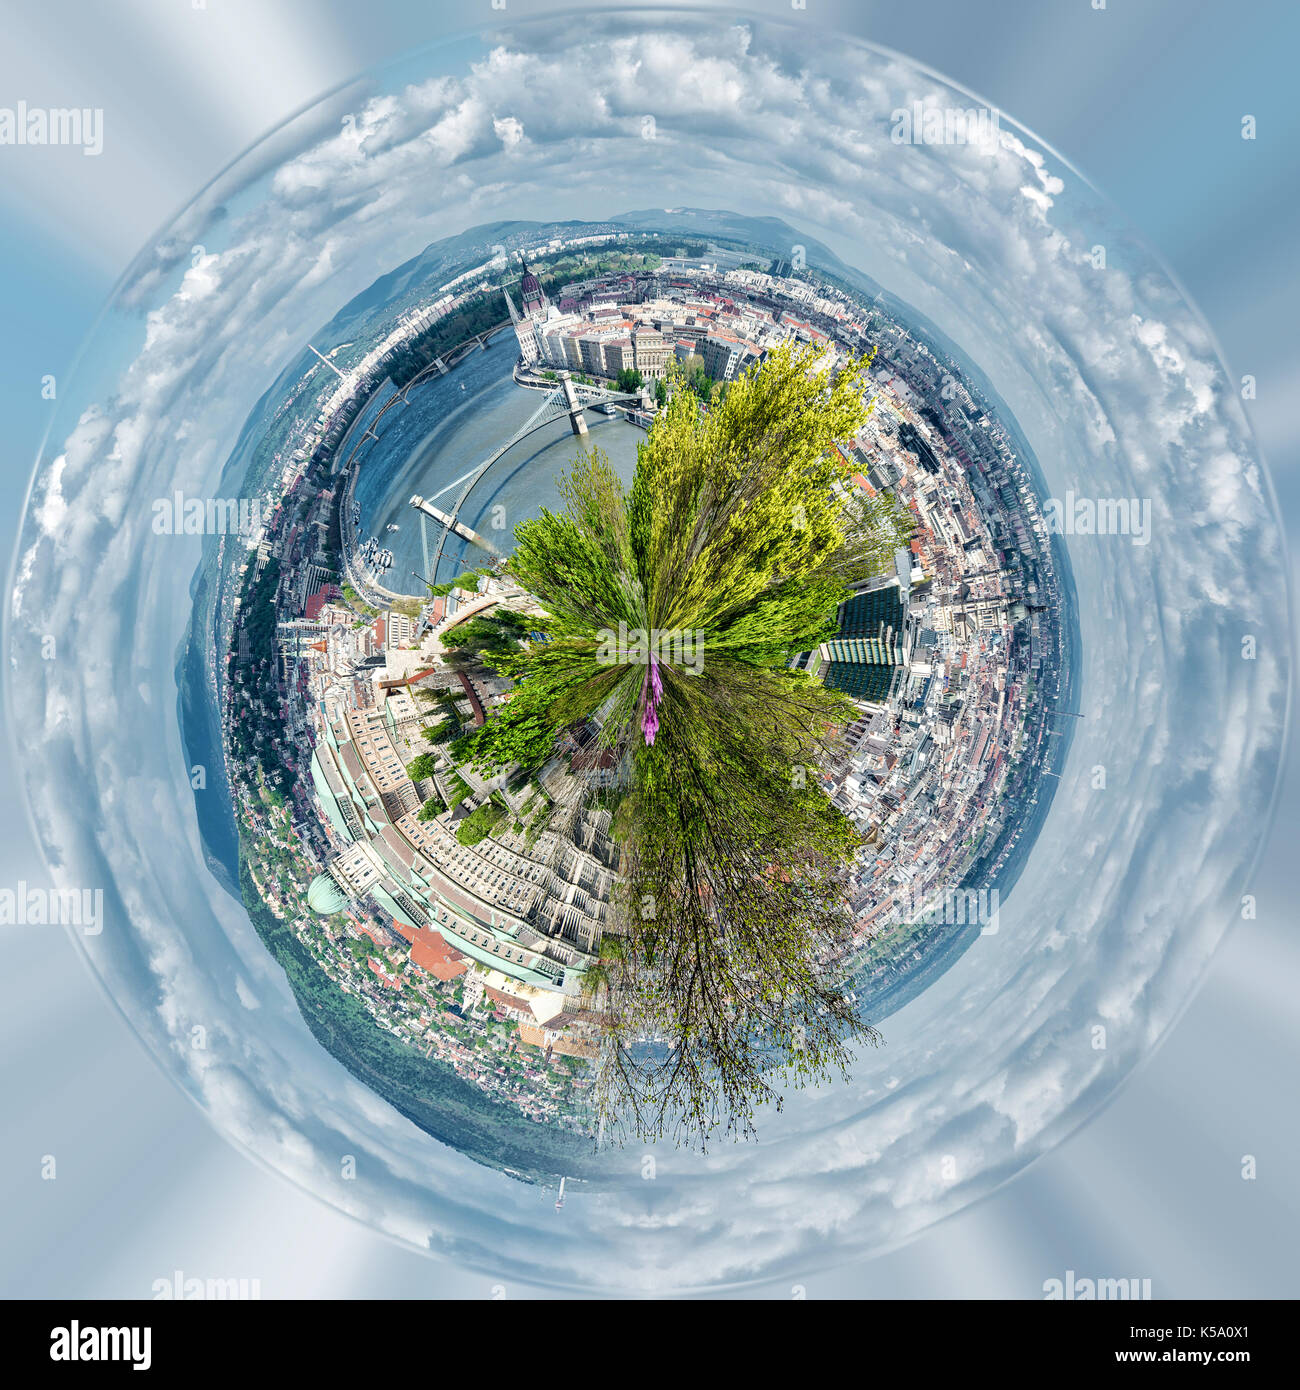 Little planet 360 degree sphere. Panoramic view of Budapest city. Hungary Stock Photo